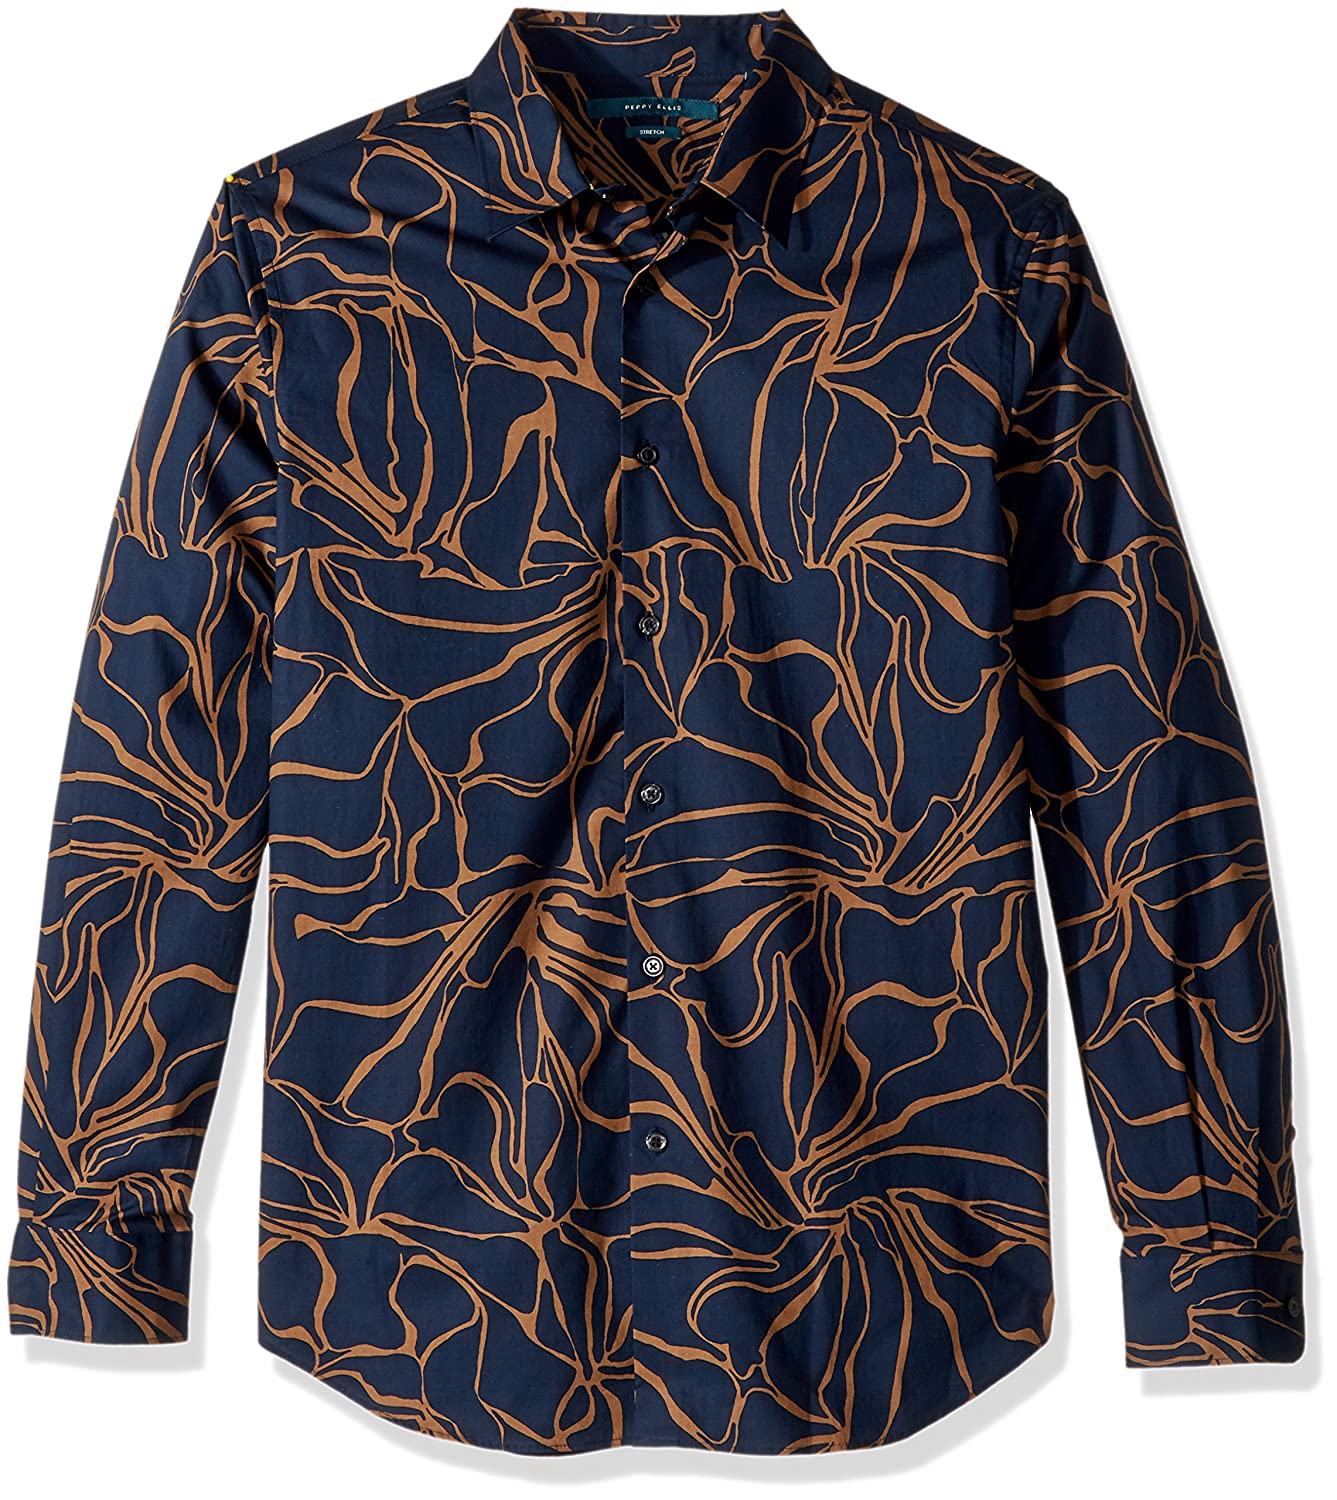 Perry Ellis Mens Long Sleeve Abstract Floral Print Shirt